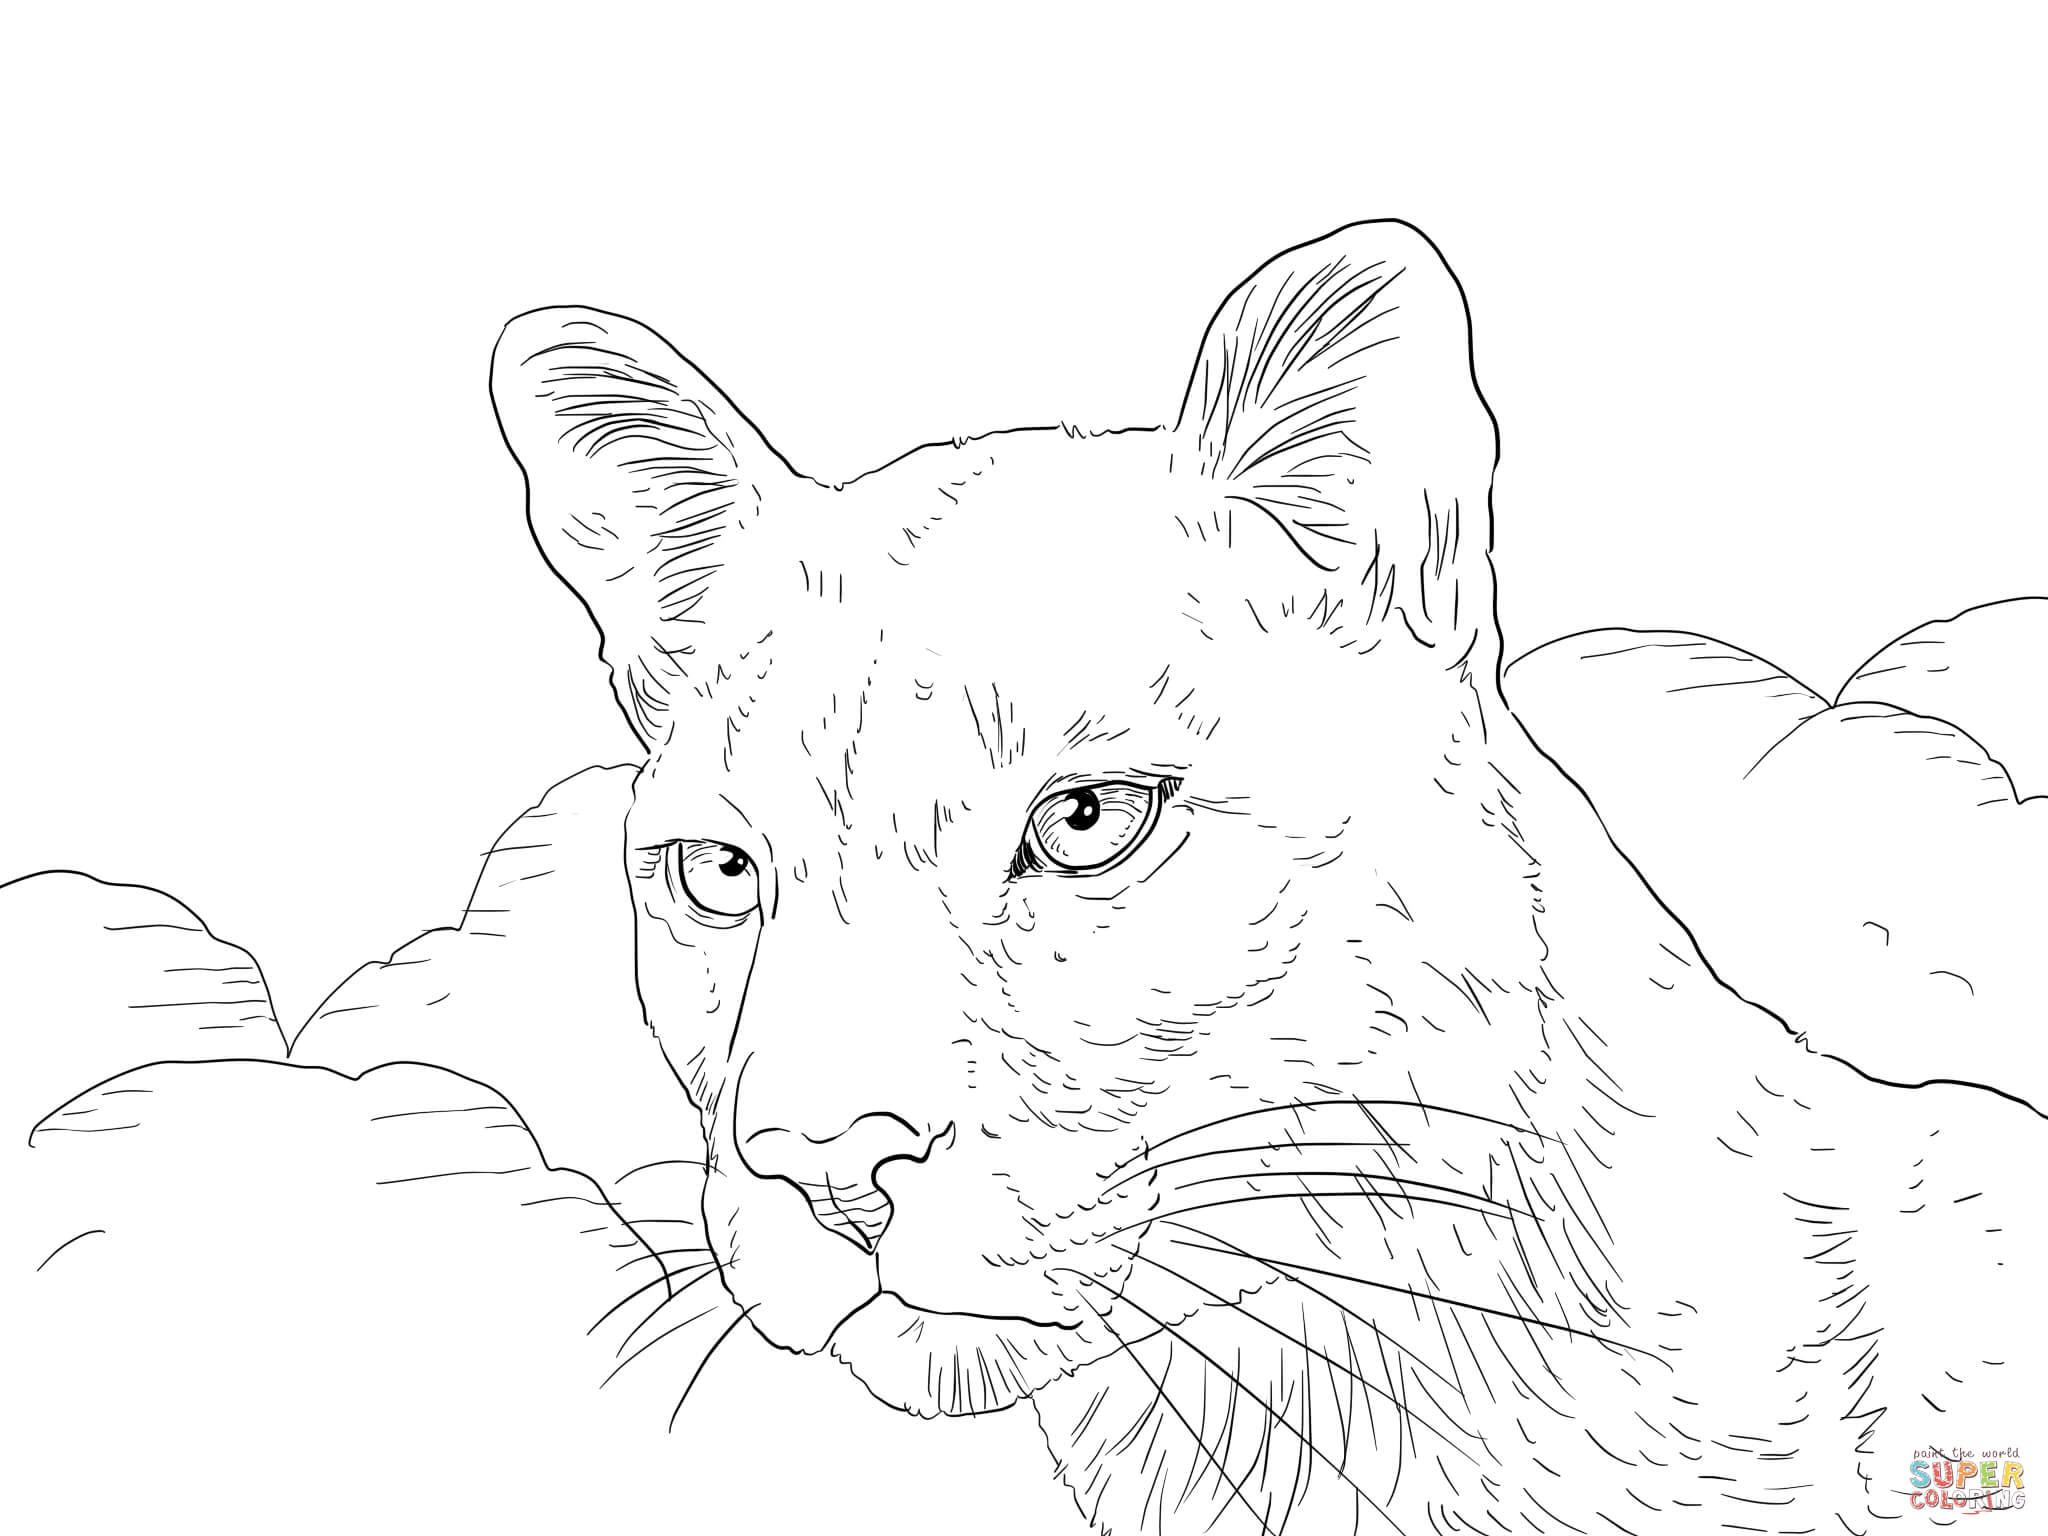 panther-coloring-page-0003-q1